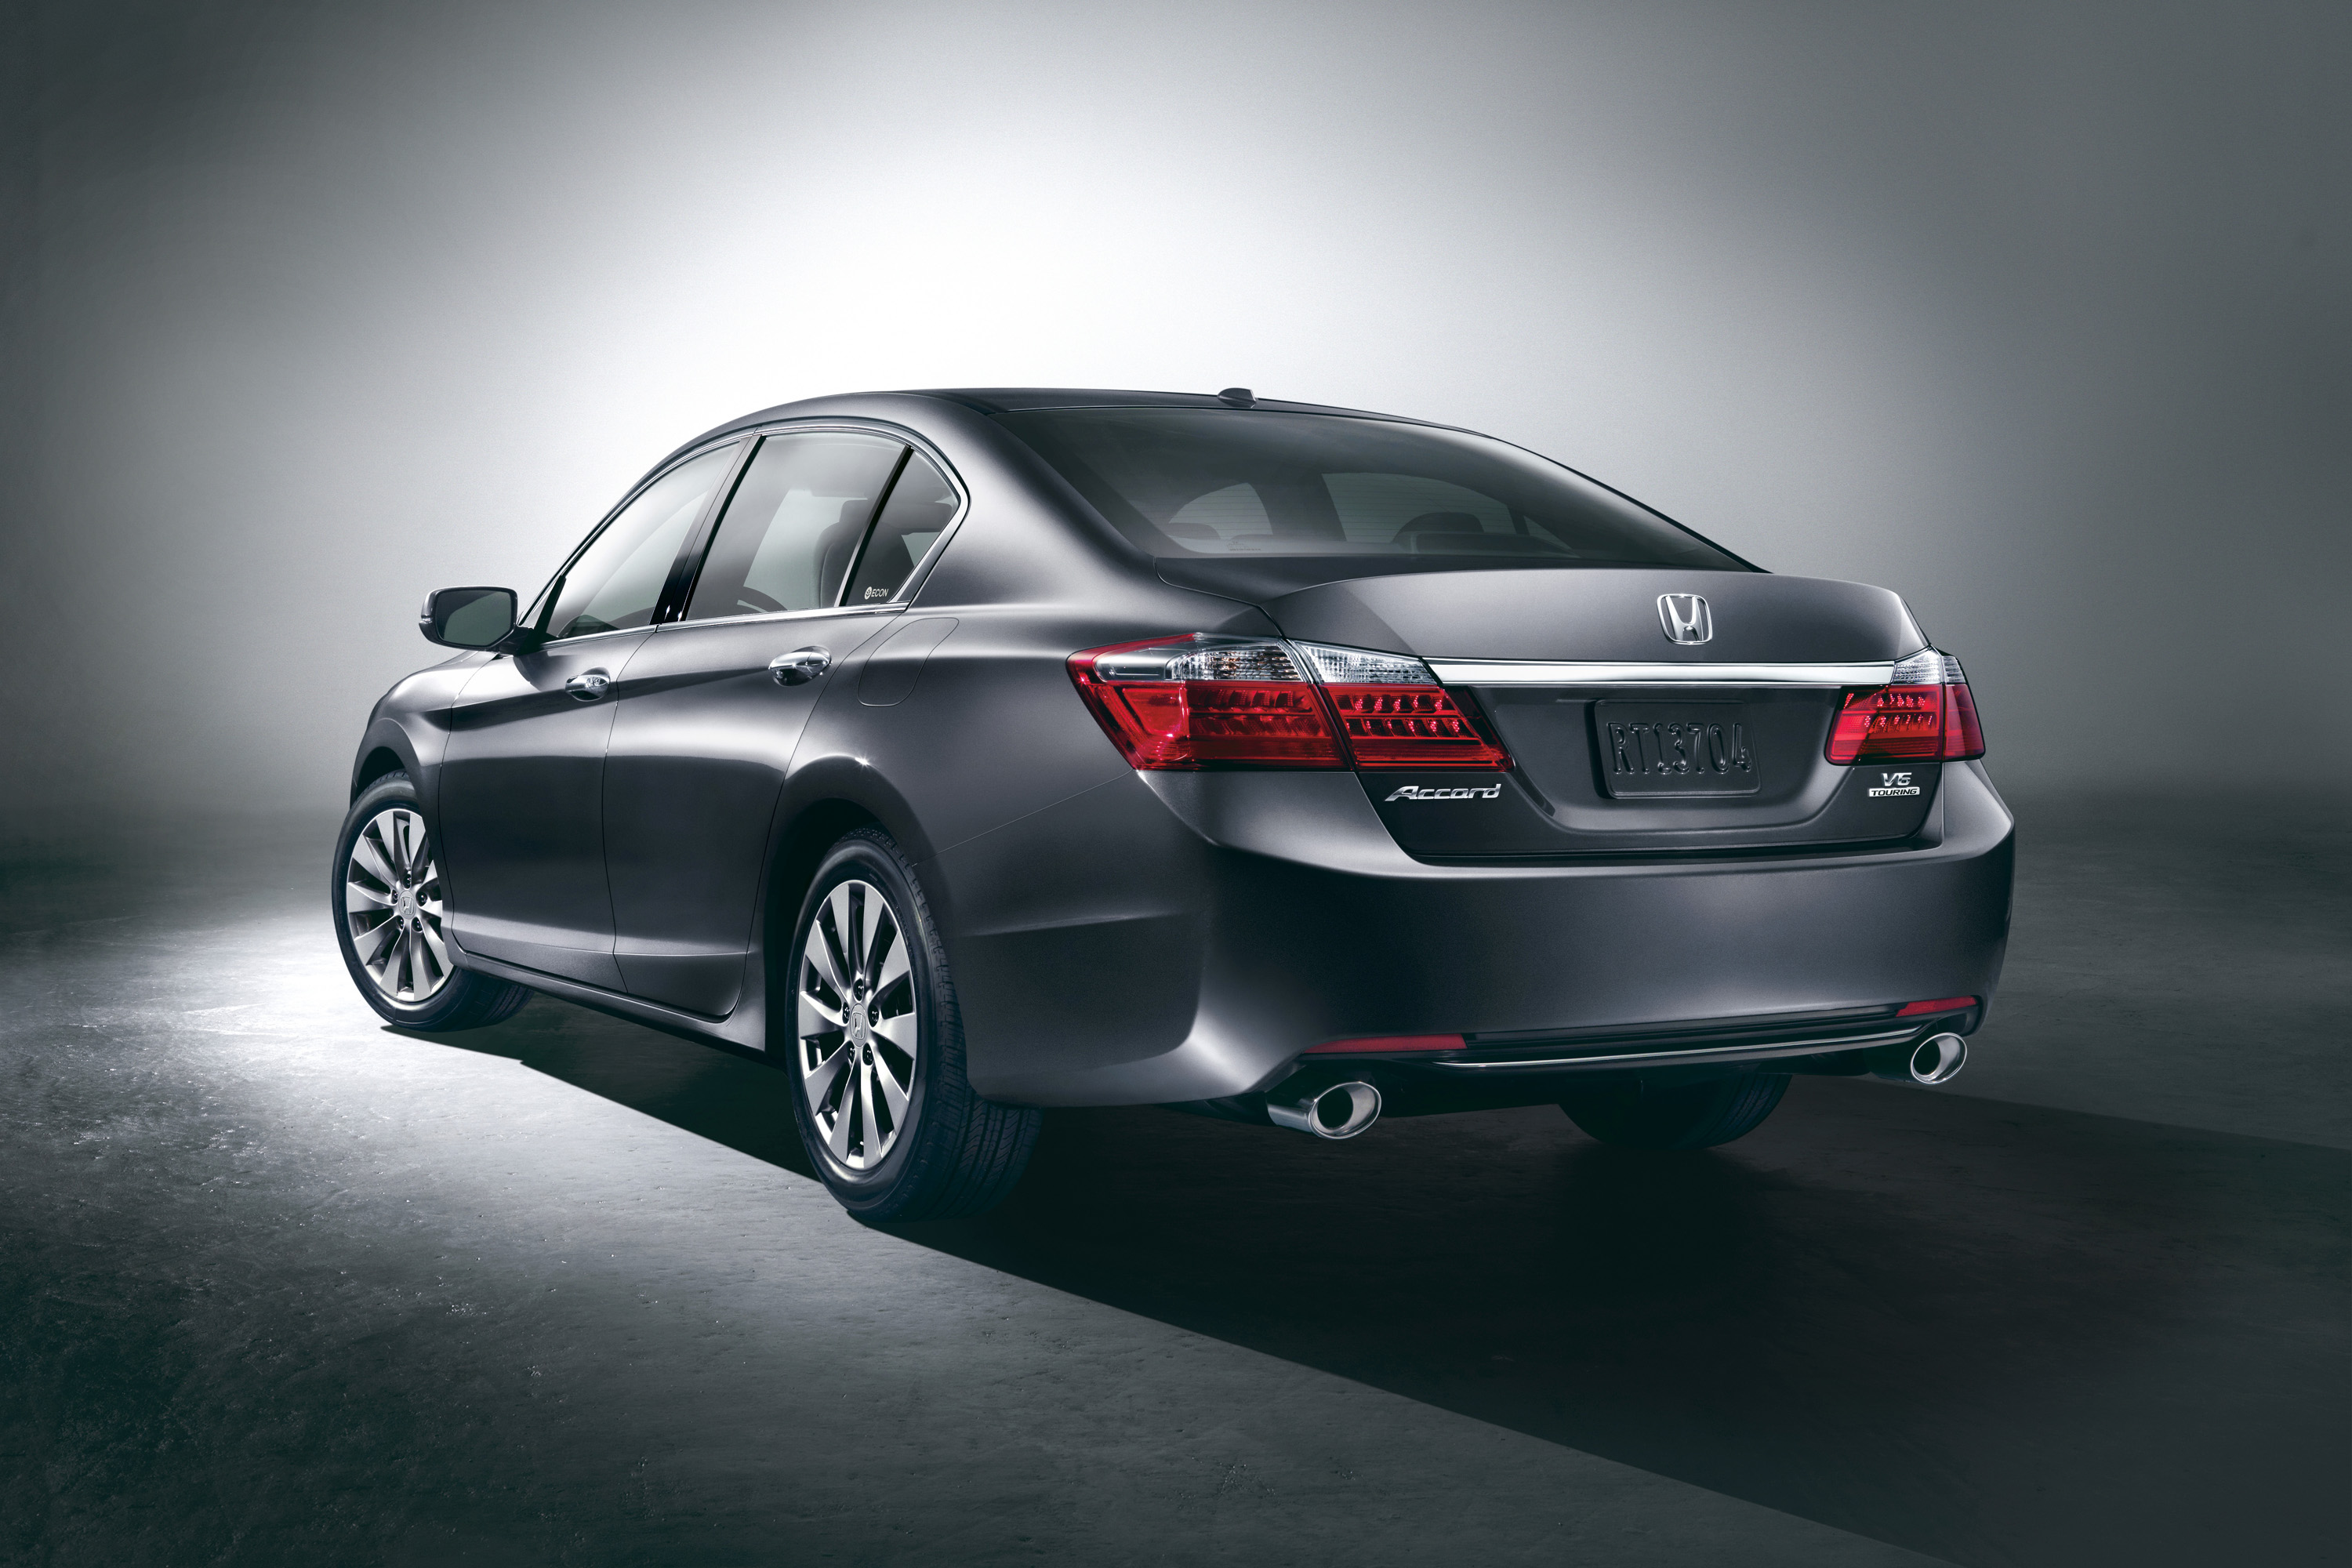 Honda Accord #6